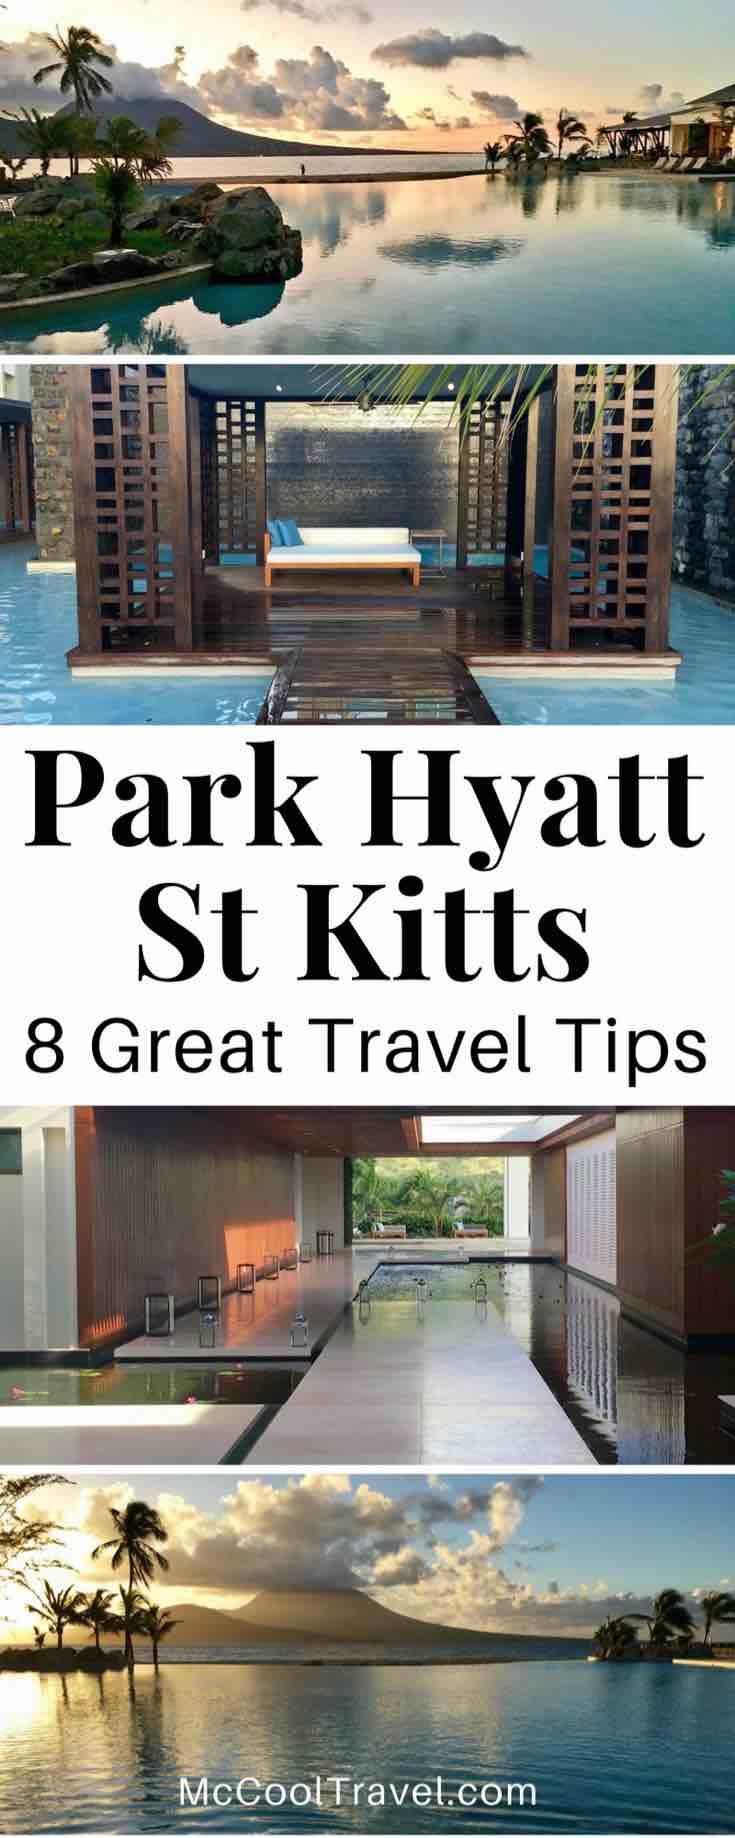 Park Hyatt St Kitts | Read on for what to pack, what to expect, secret places to visit, at the spectacular Park Hyatt St. Kitts in West Indies, Caribbean.